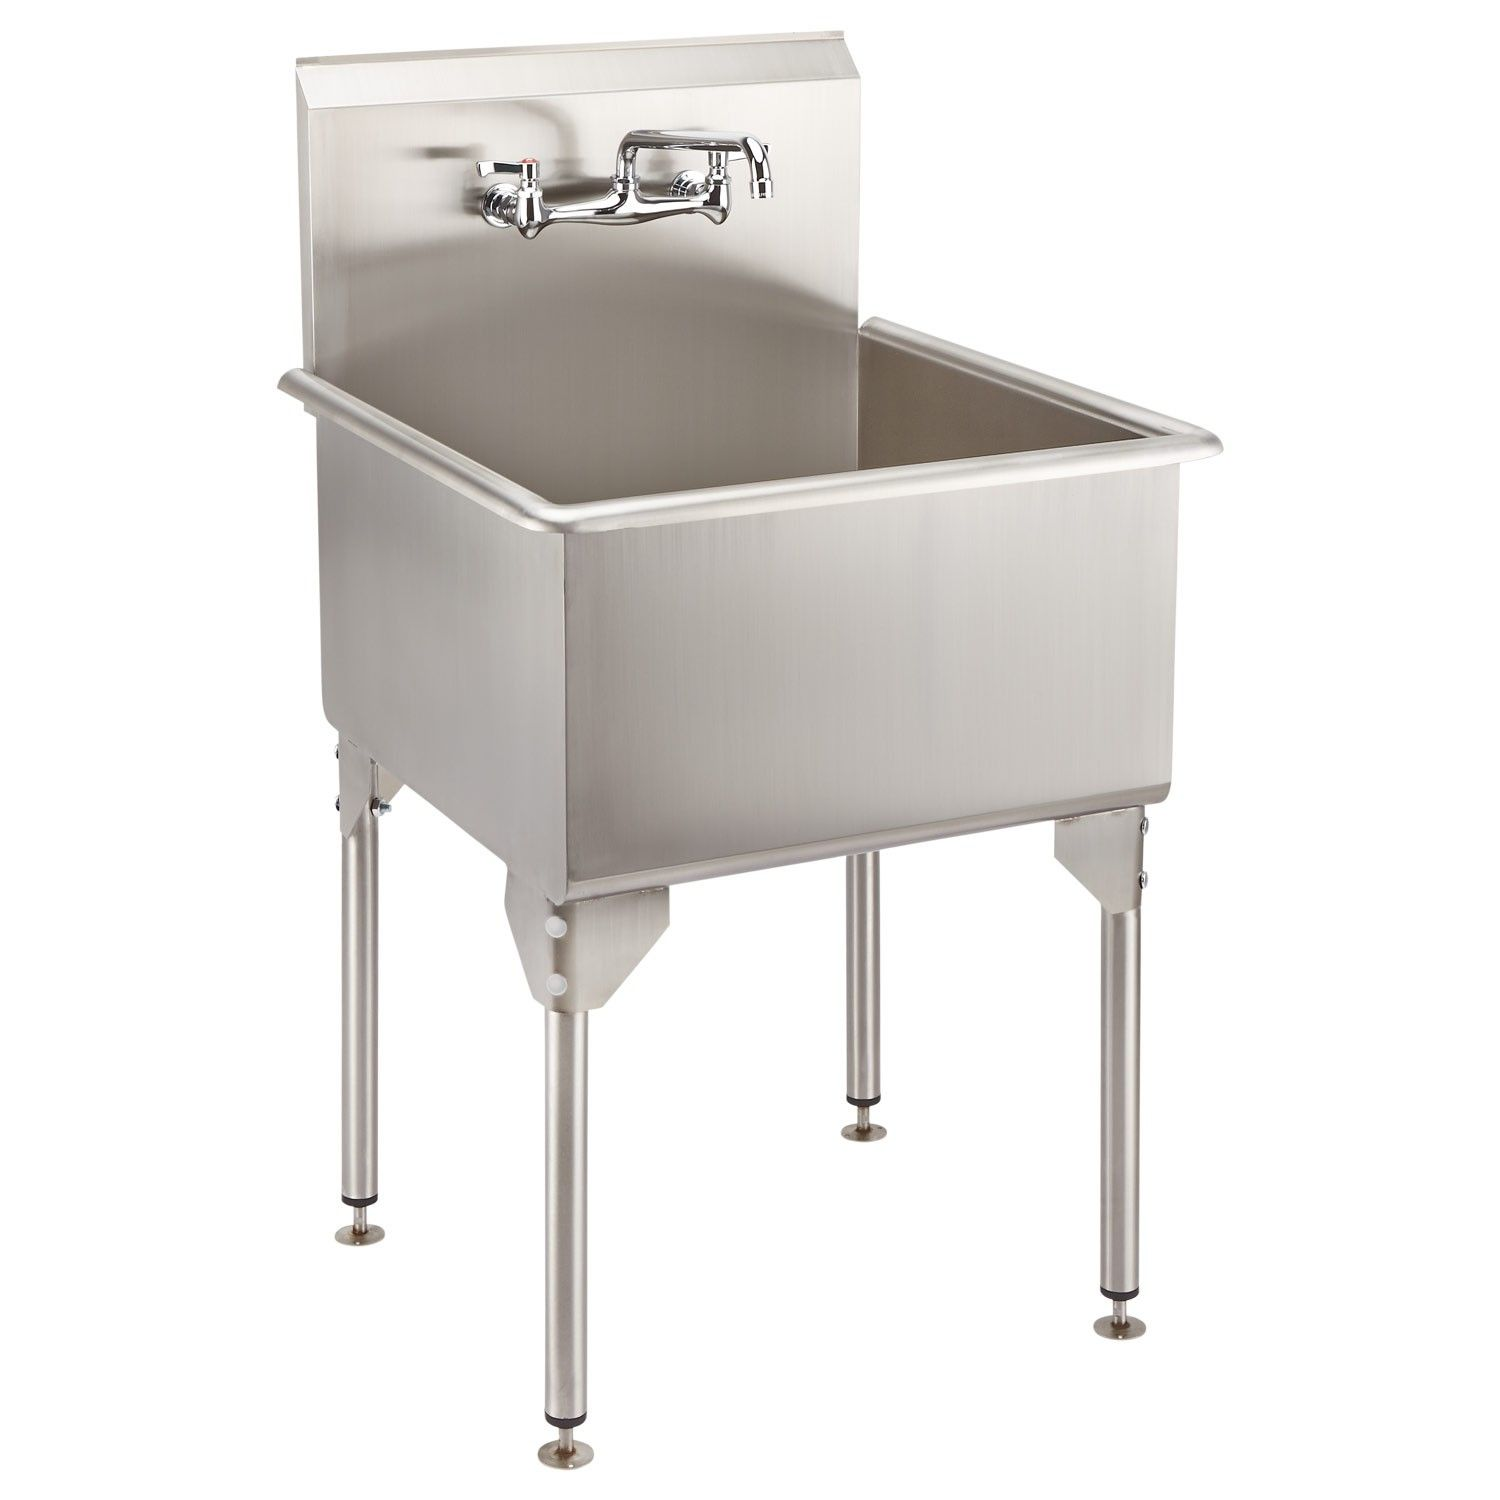 27 Stainless Steel Utility Sink Stainless Steel Utility Sink Laundry Room Sink Utility Sink